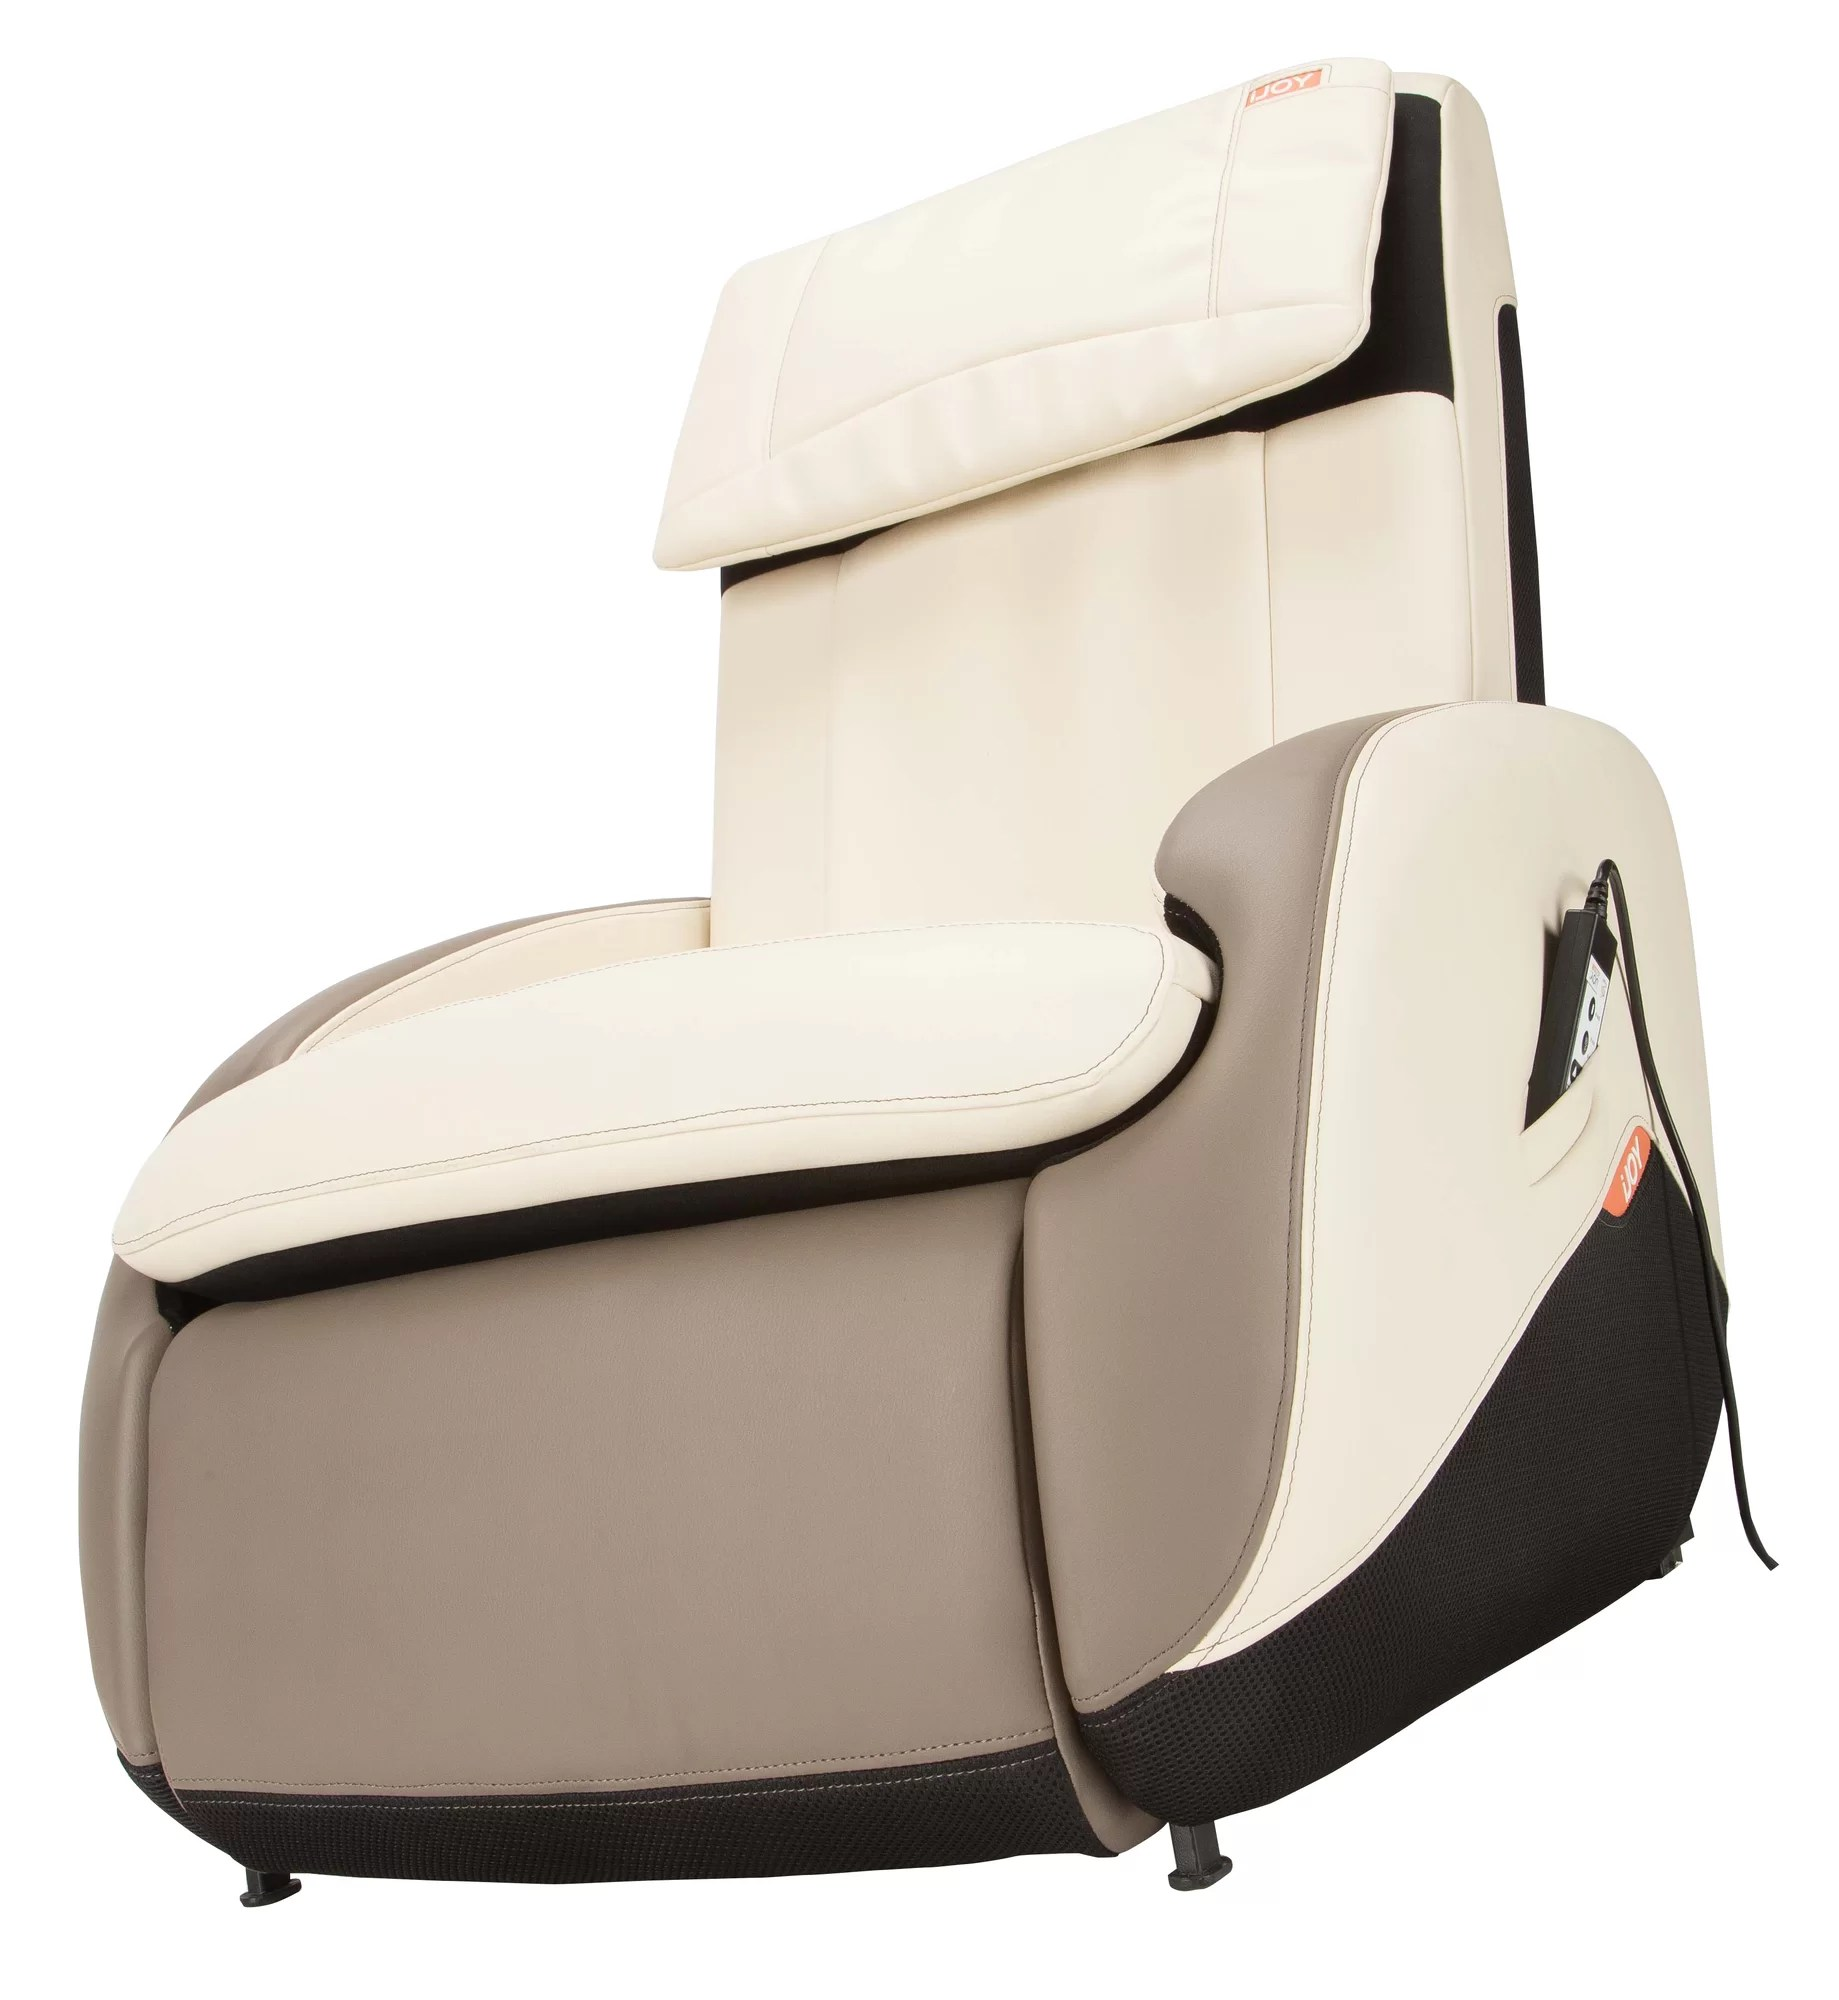 sanyo massage chair webbed chaise lounge chairs human touch ijoy active 2 zero gravity ebay